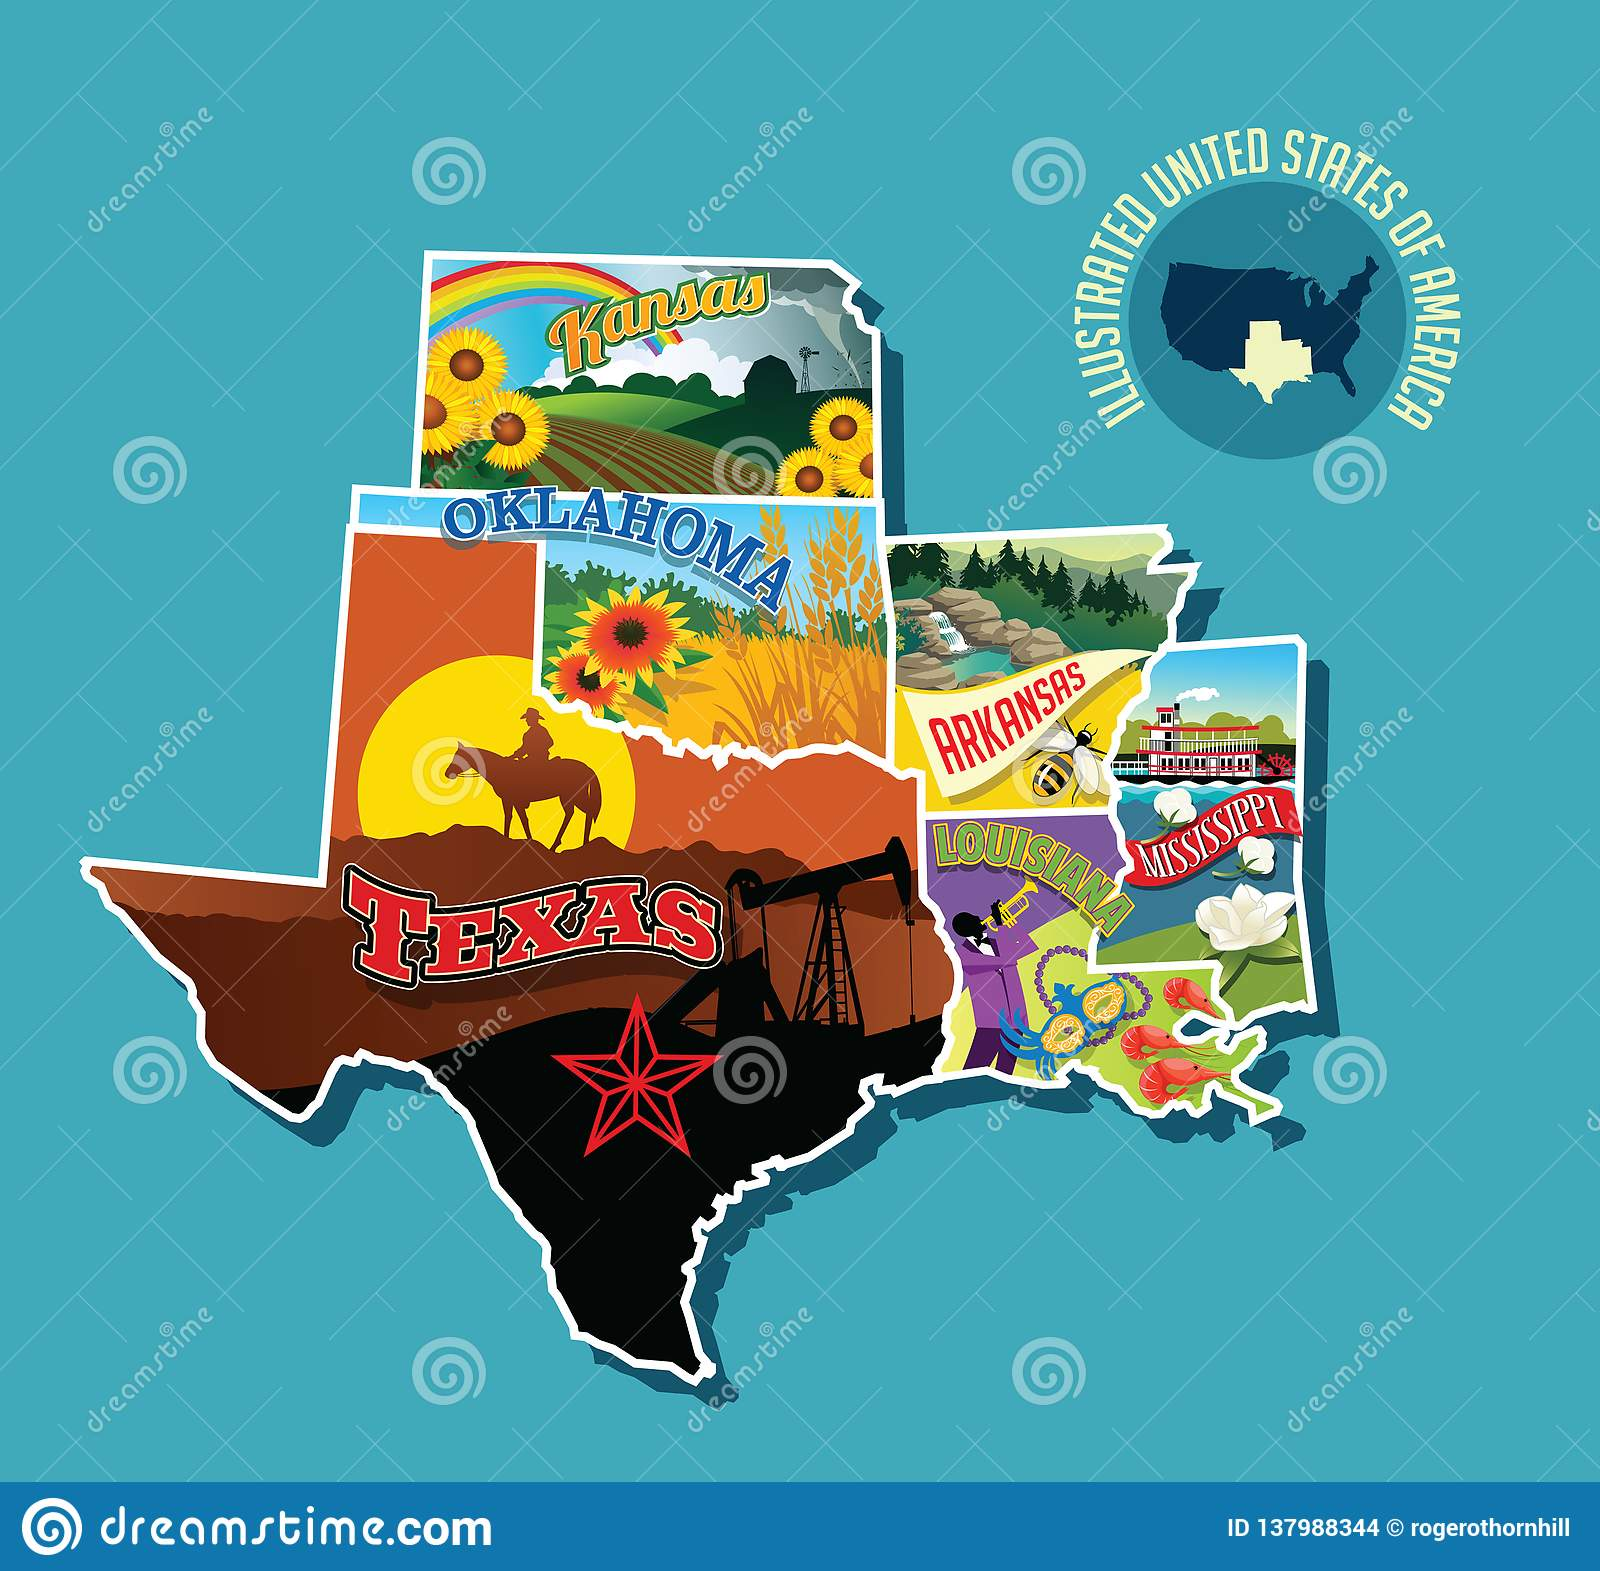 Map Of Texas Oklahoma And Louisiana.Illustrated Pictorial Map Of South Central United States Stock